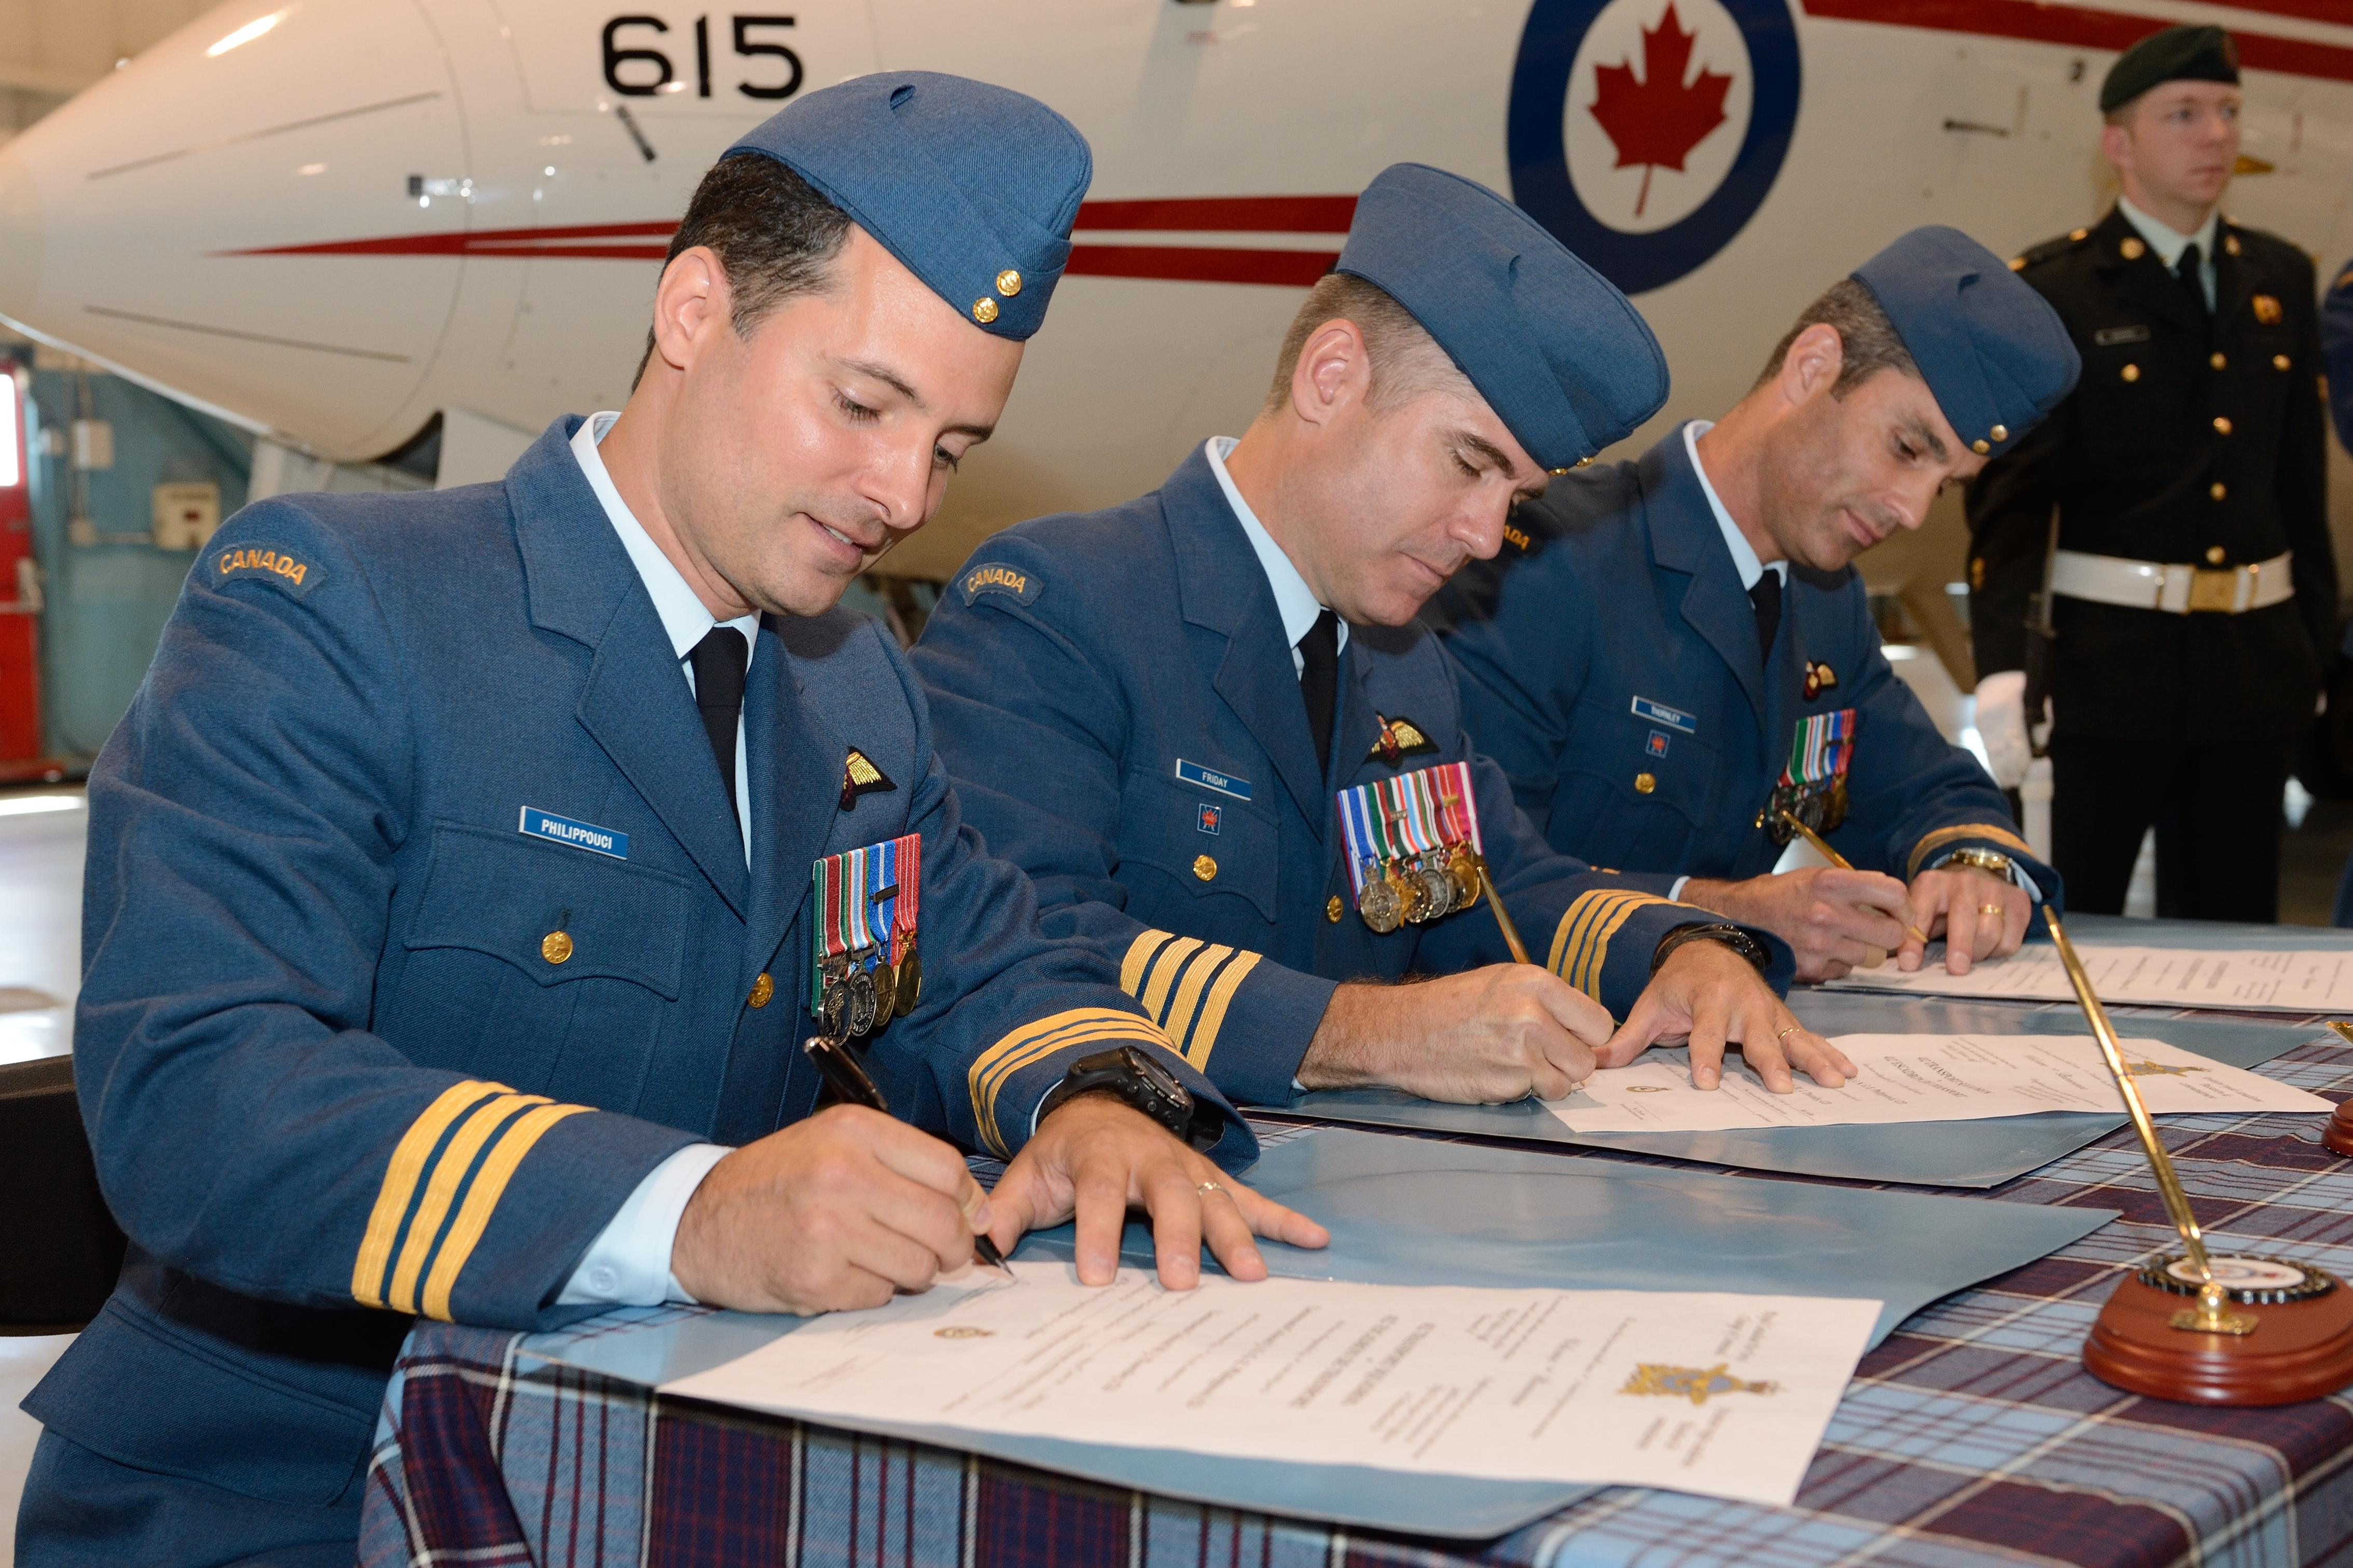 Signing of the official scroll recording the Change of Command by Col Sean Friday, LCol Michael Thornley, and LCol Éric Philippouci.